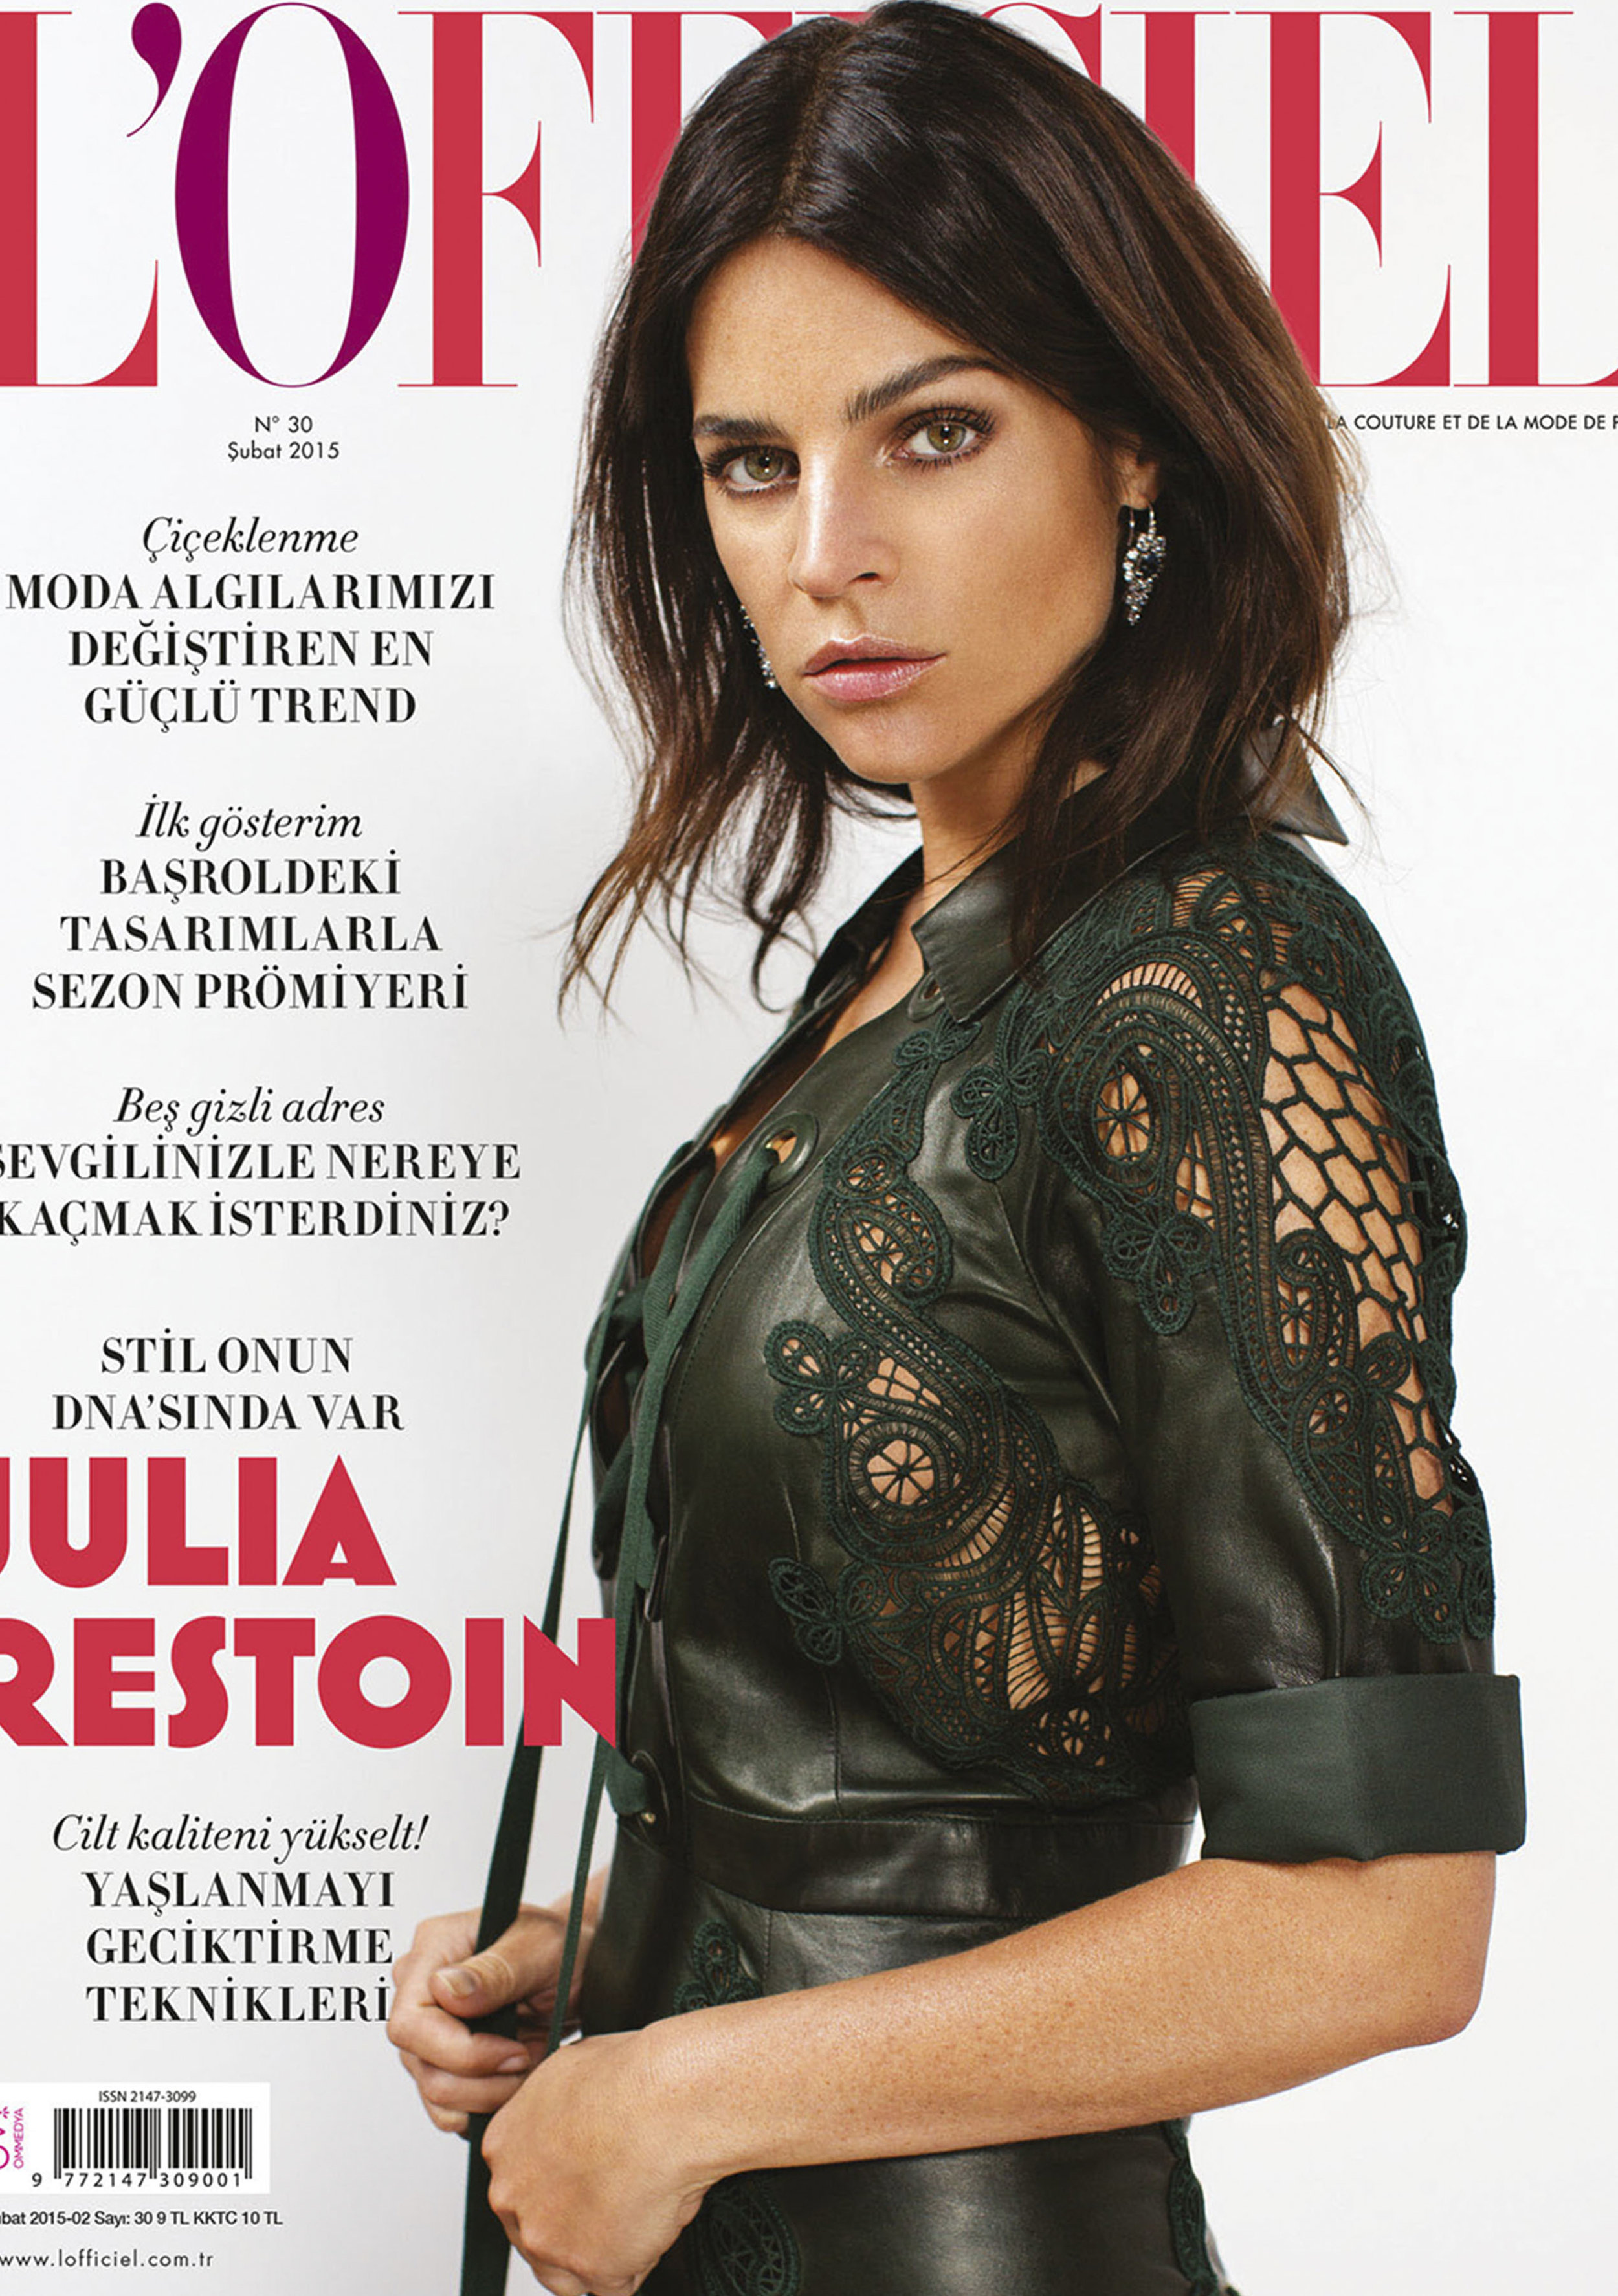 L'officielTurkey - Julia Restoin 2015, February Issue Cover Story